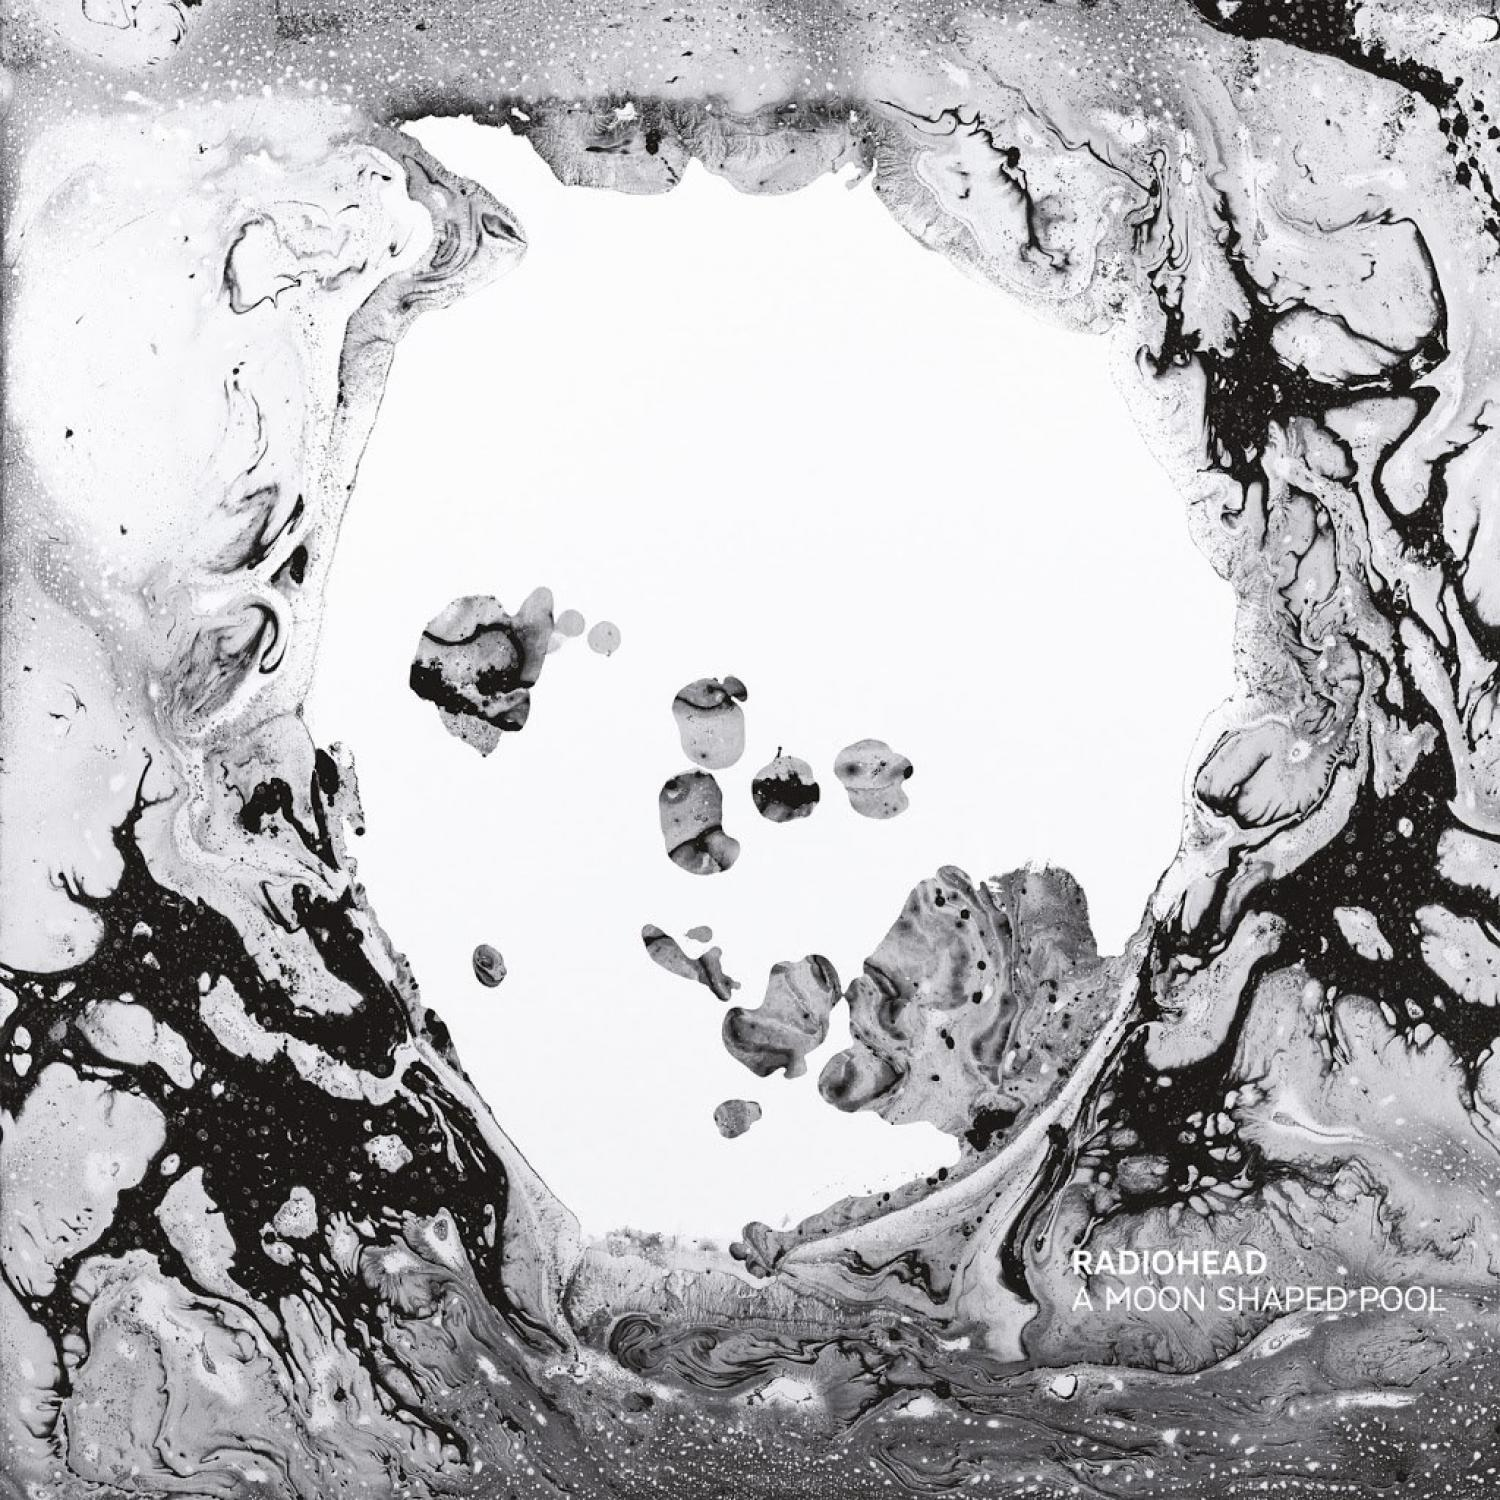 After a week of cryptic teases, Radiohead's A Moon Shaped Pool dropped on May 8.